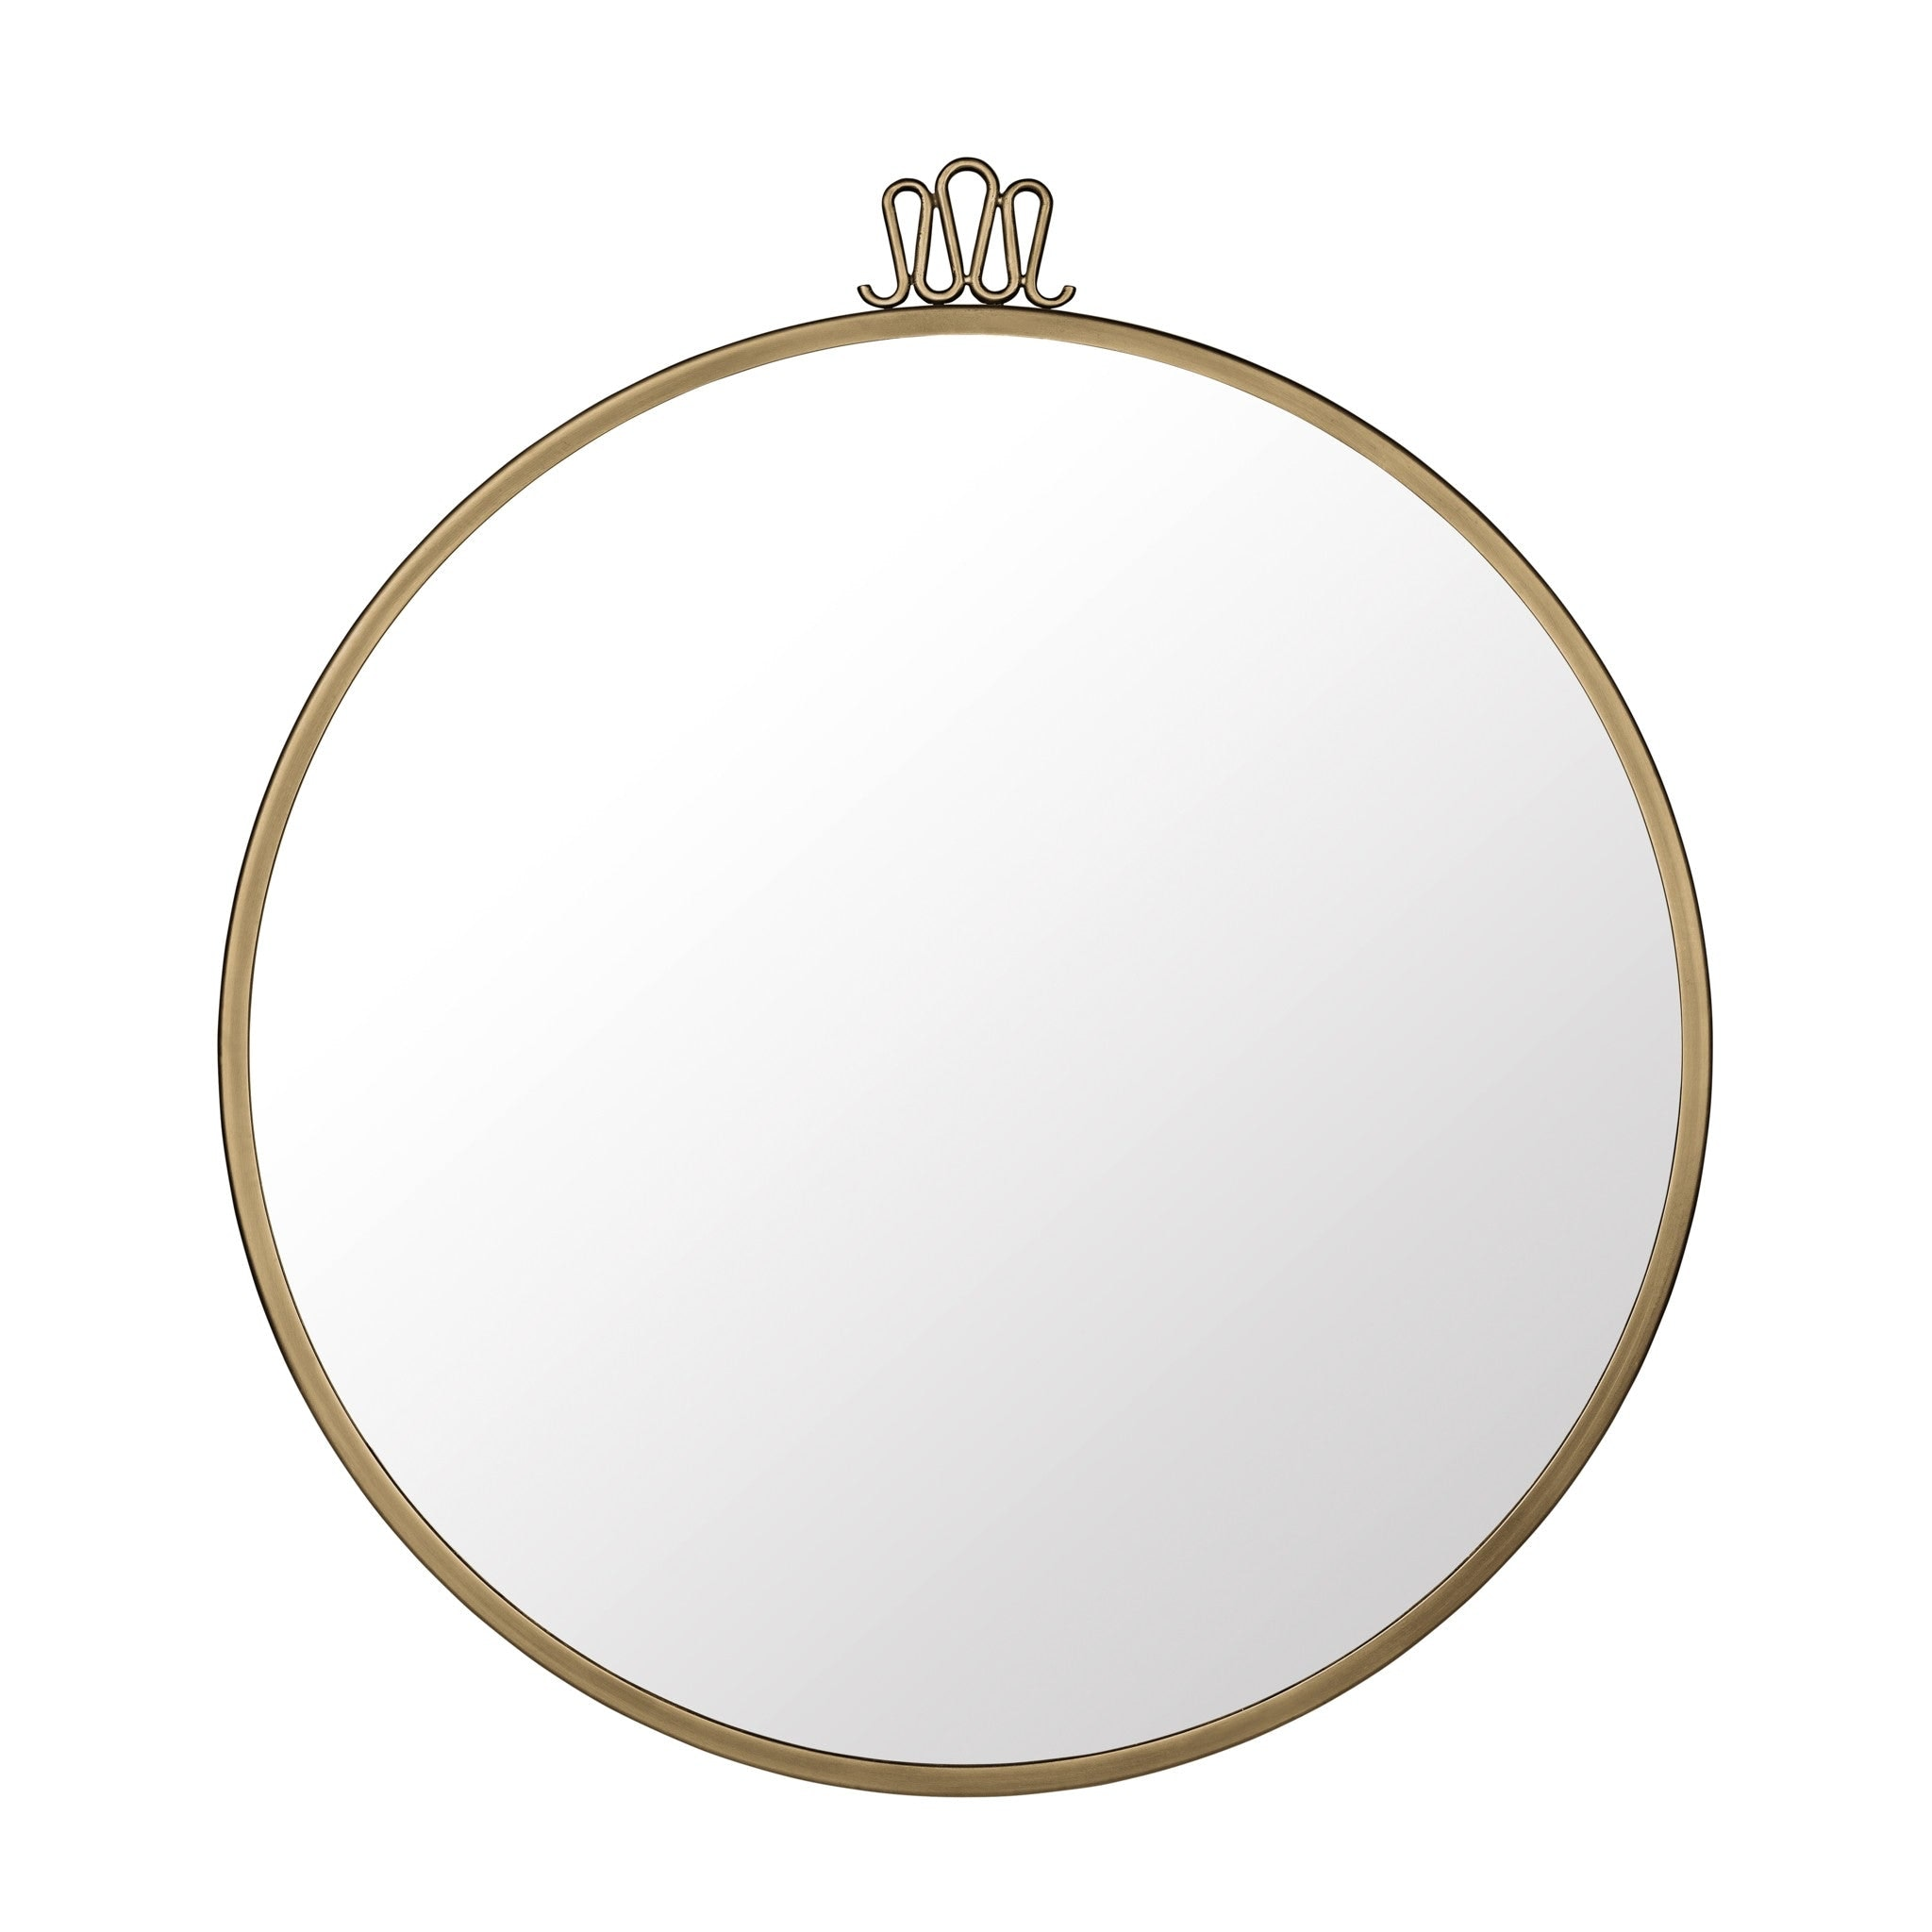 Randaccio Wall Mirror by Gubi